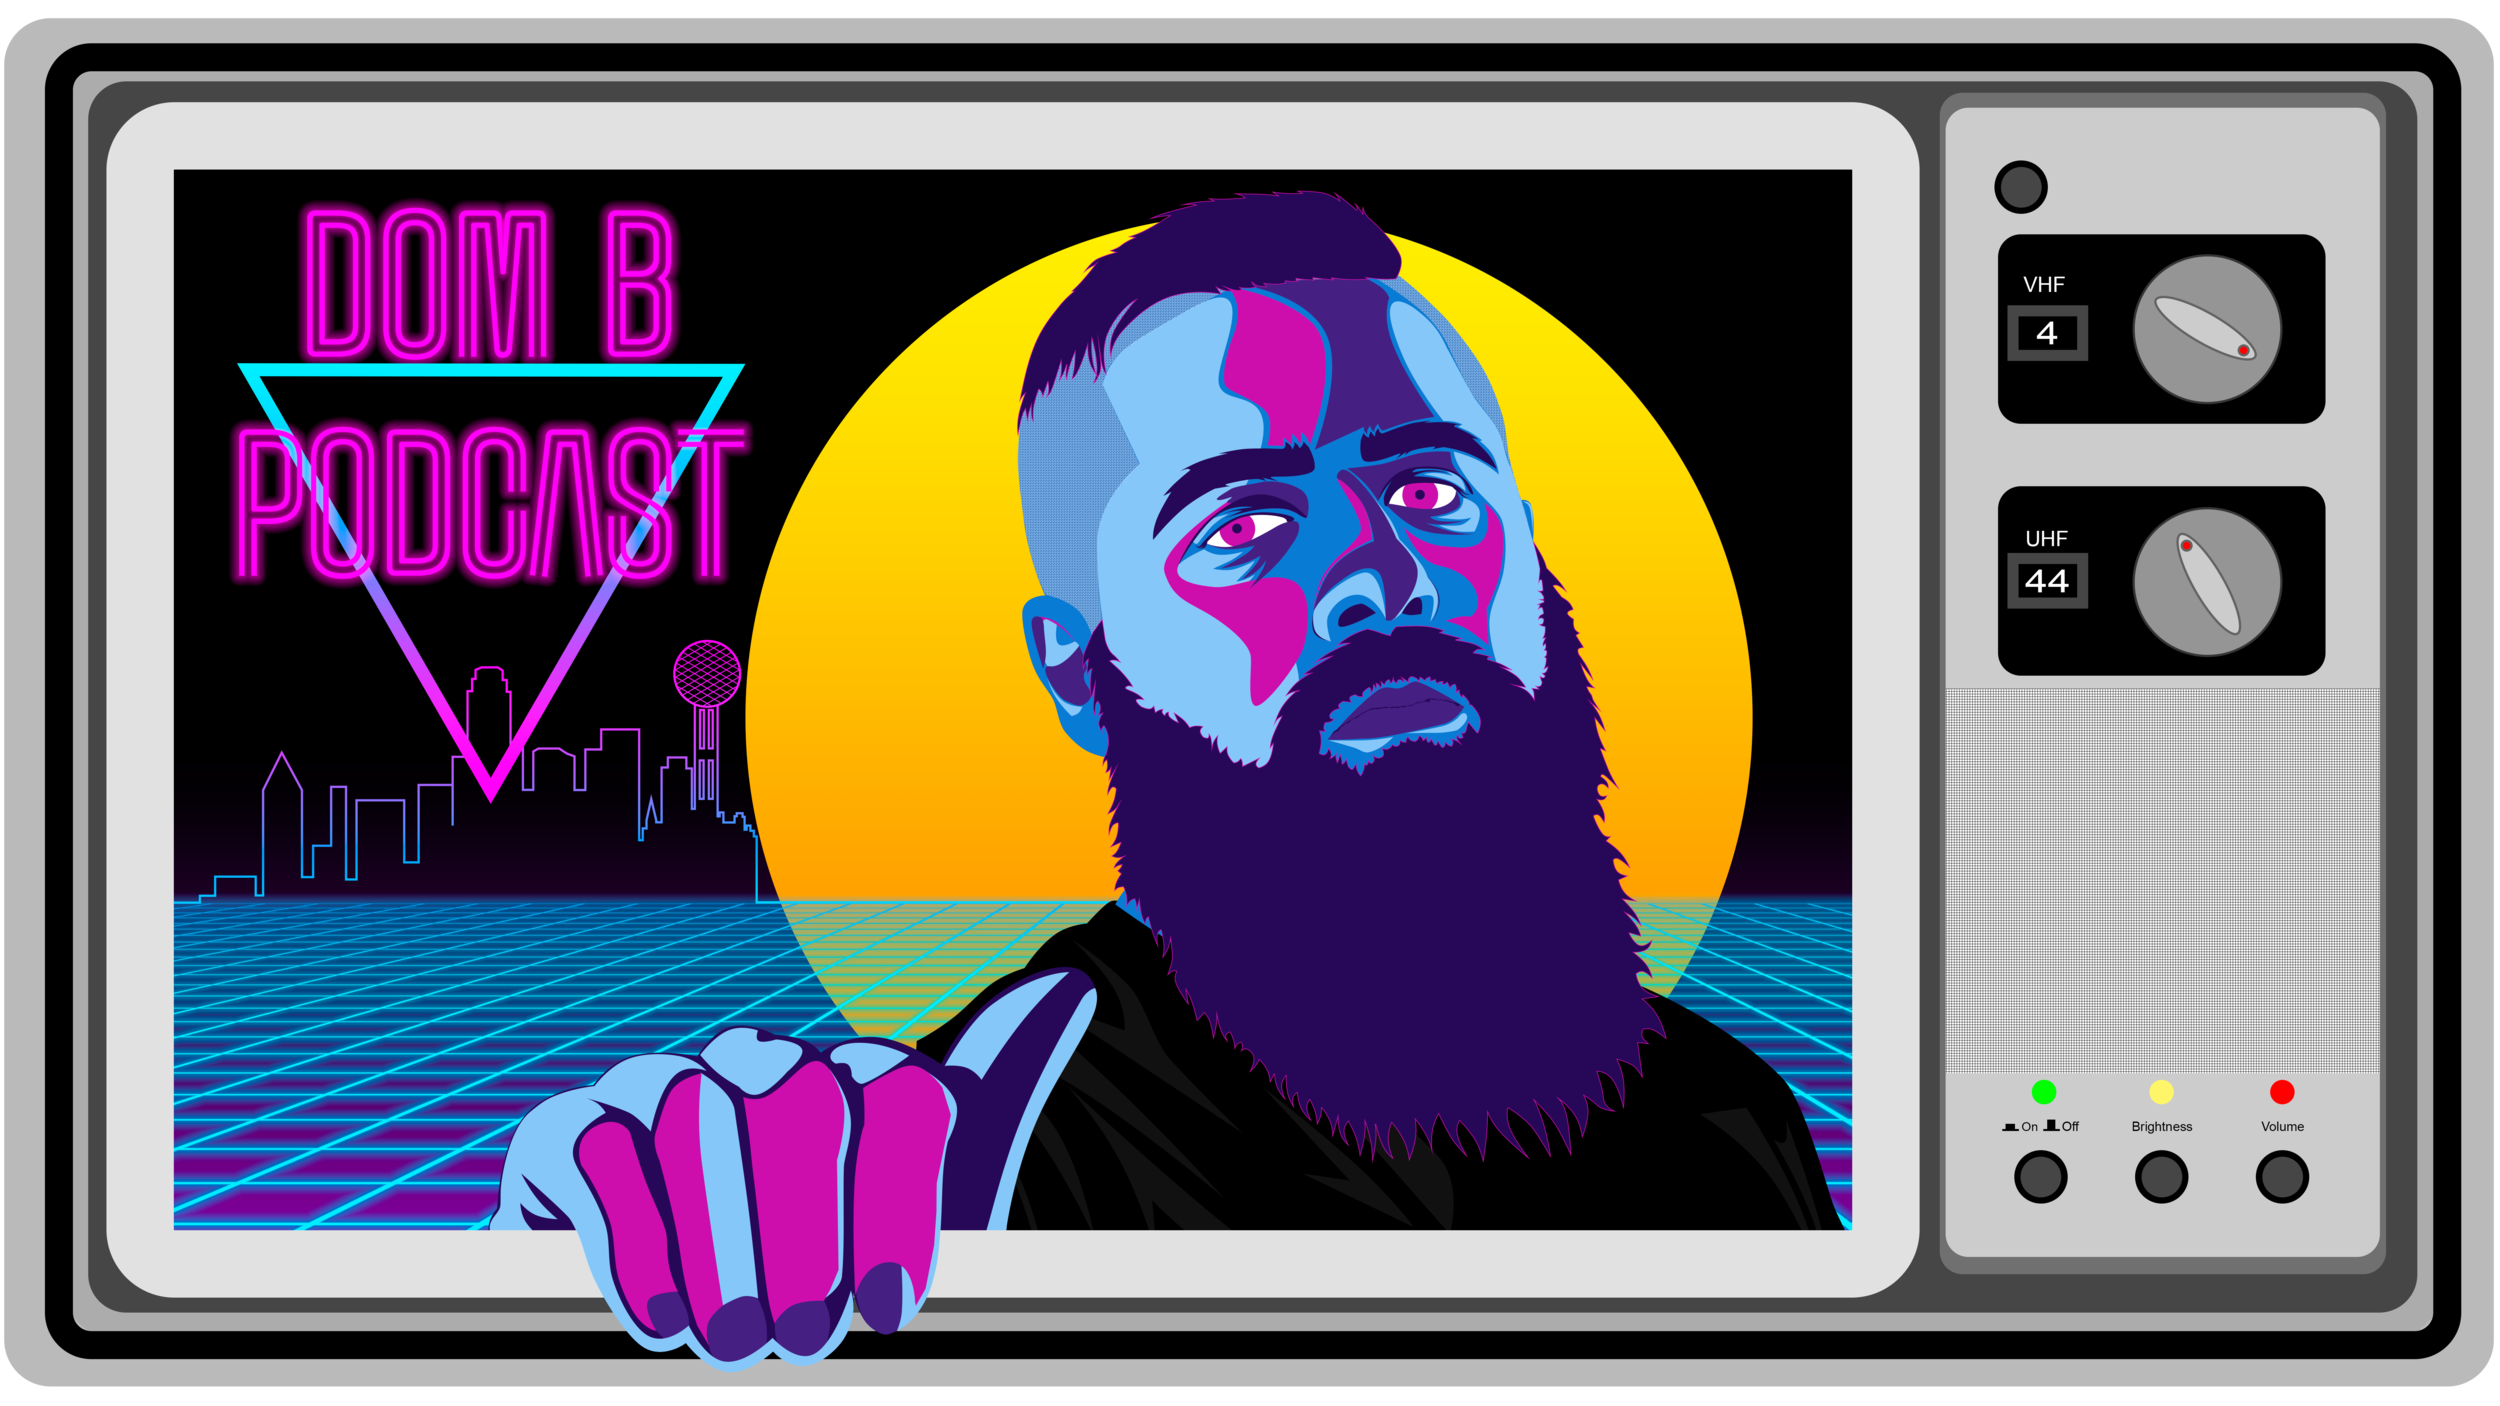 Dom B Podcast 80's PNG.png